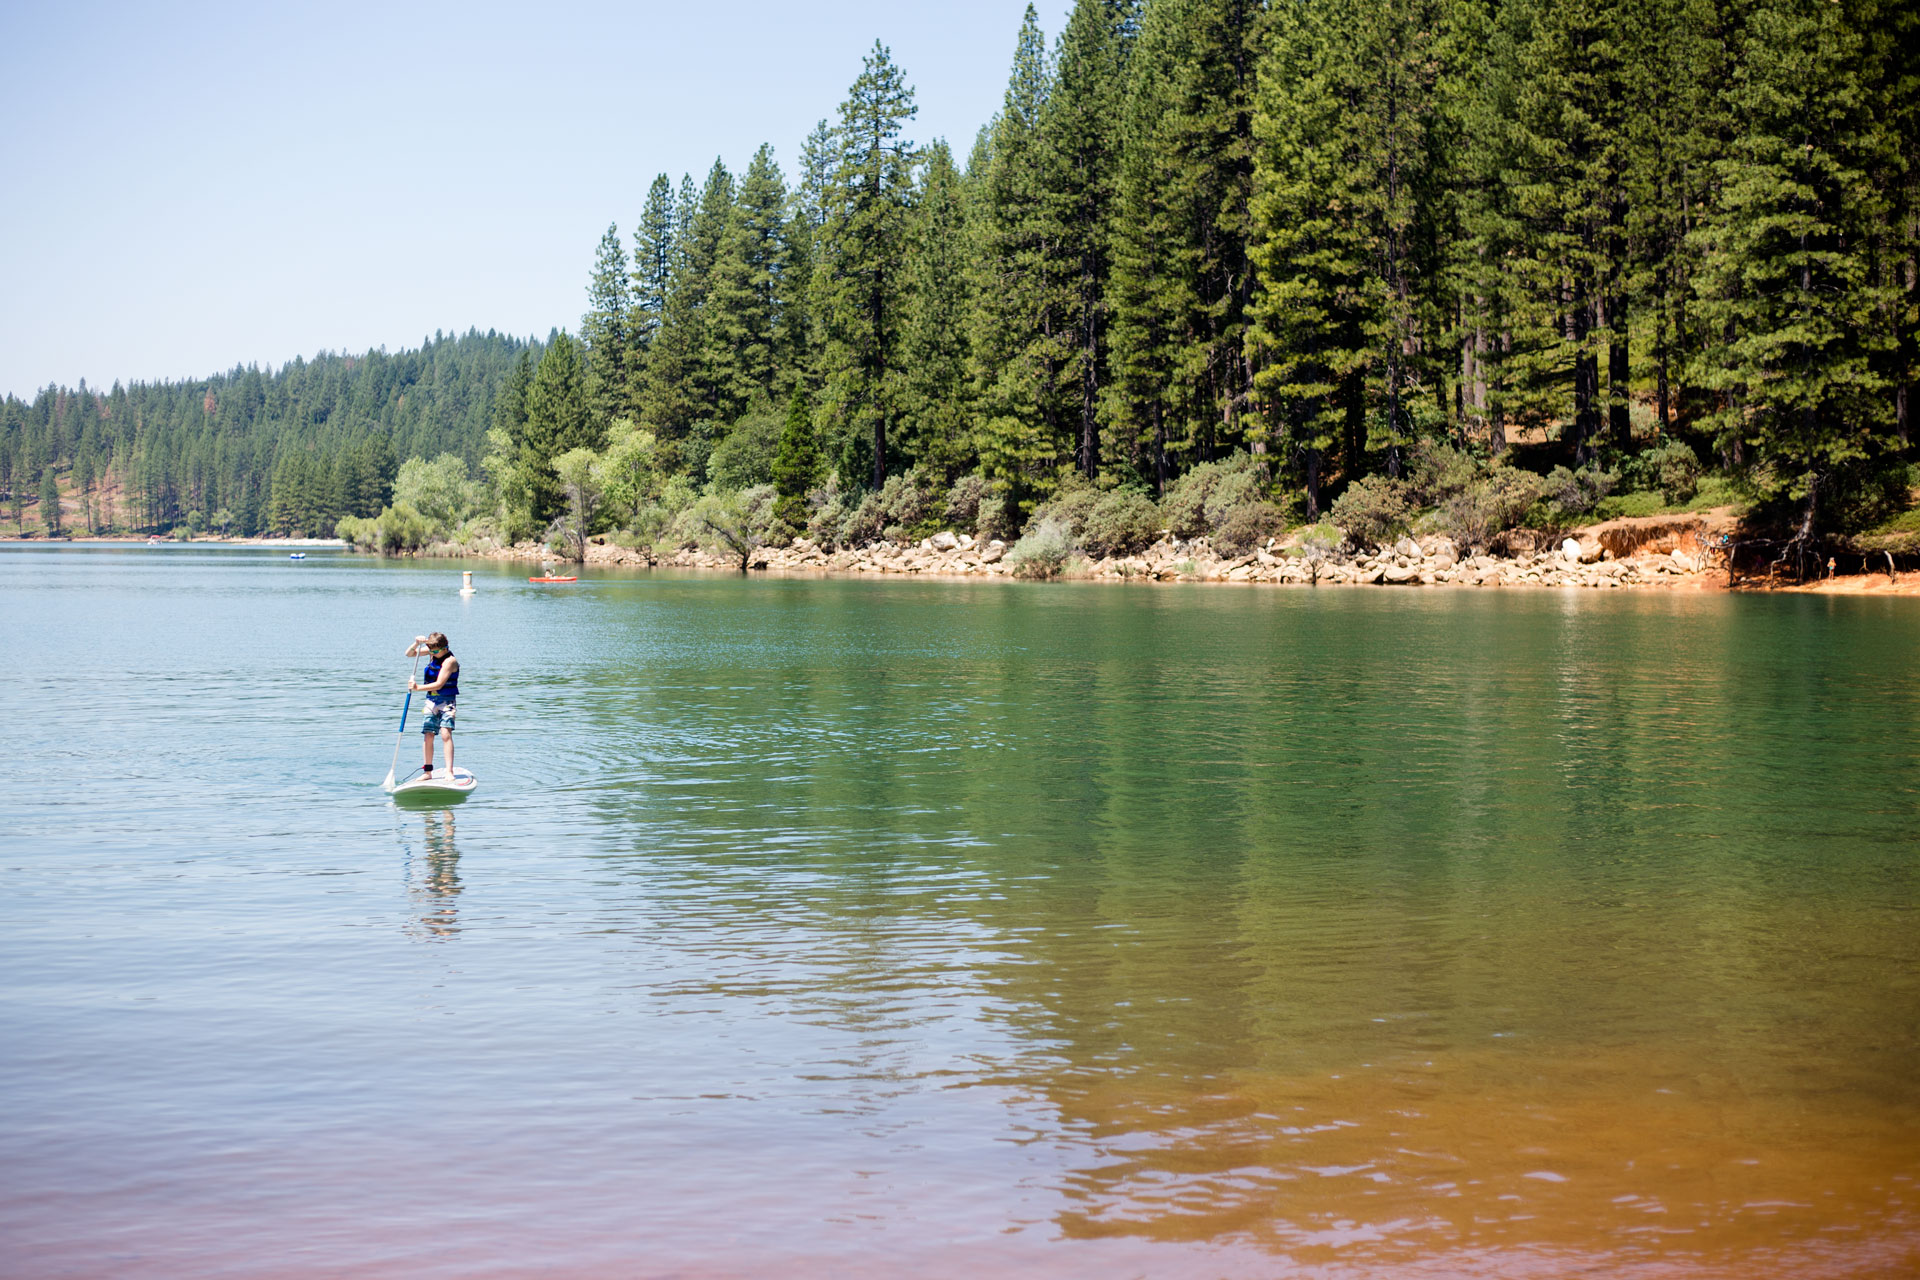 boy paddle boarding on the lake with pine trees lining the lake behind him